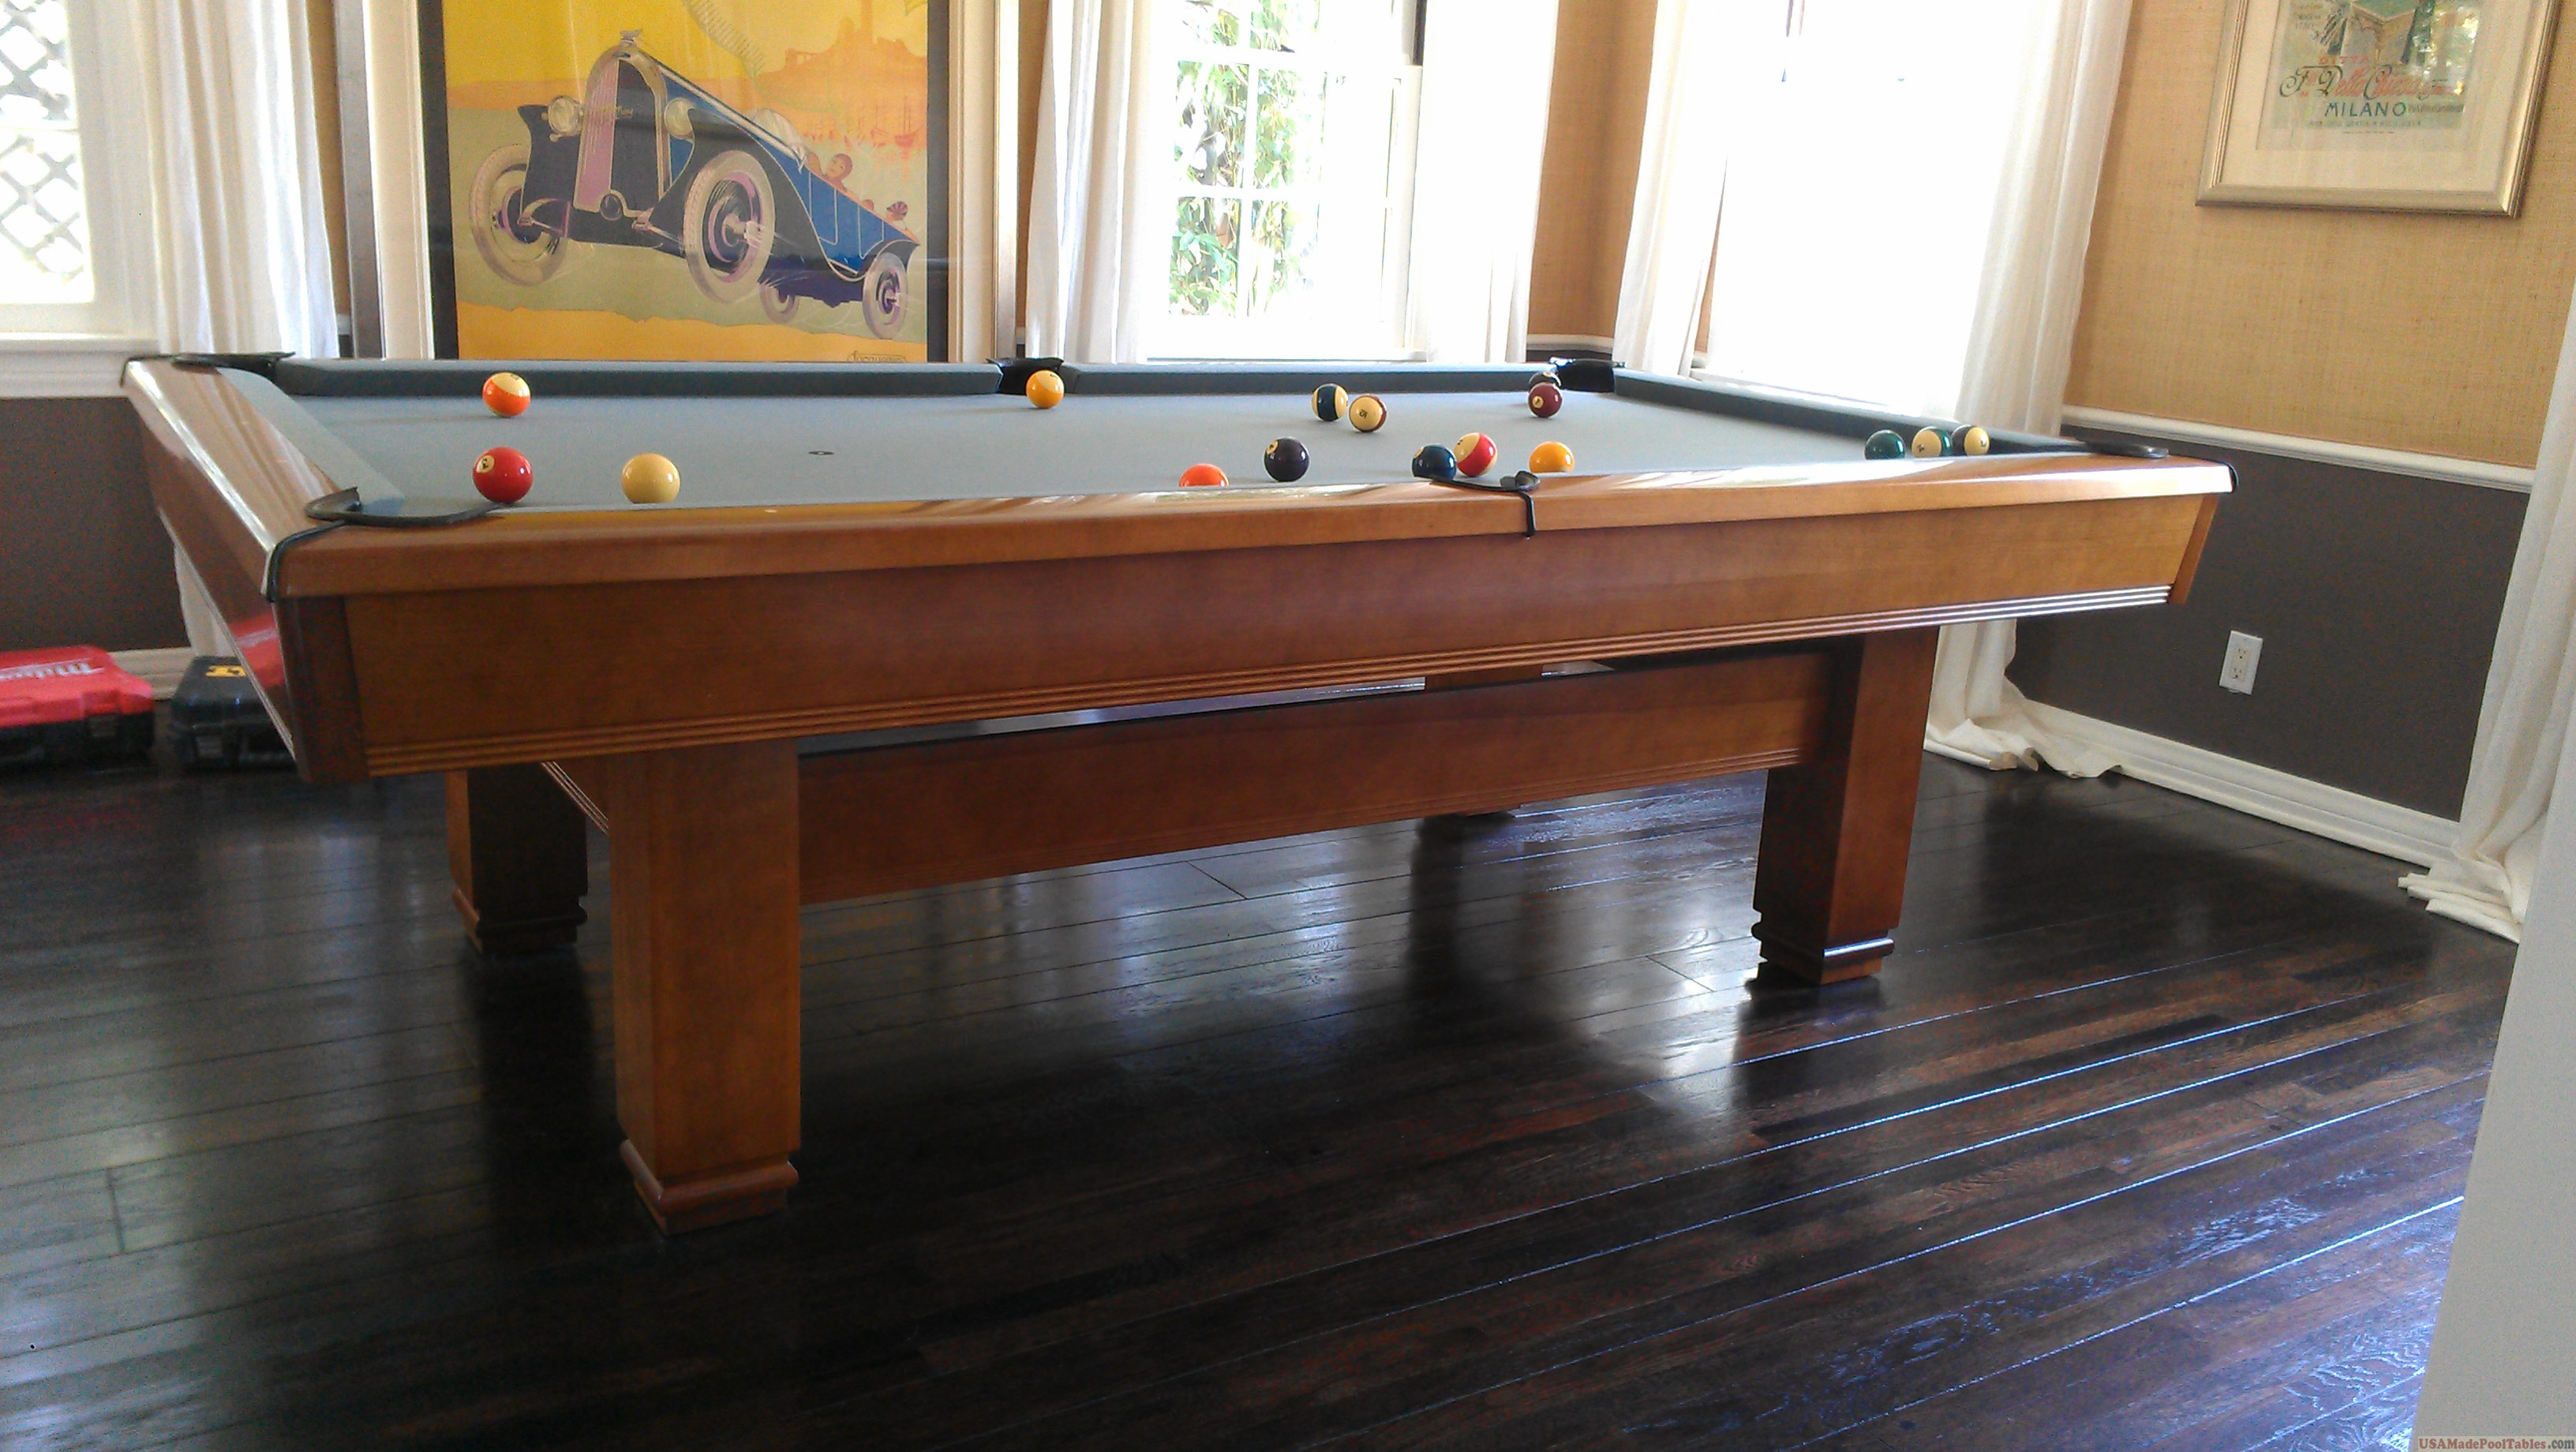 USED POOL TABLES LOS ANGELES BRUNSWICK POOL TABLES VENTURA - Milano pool table